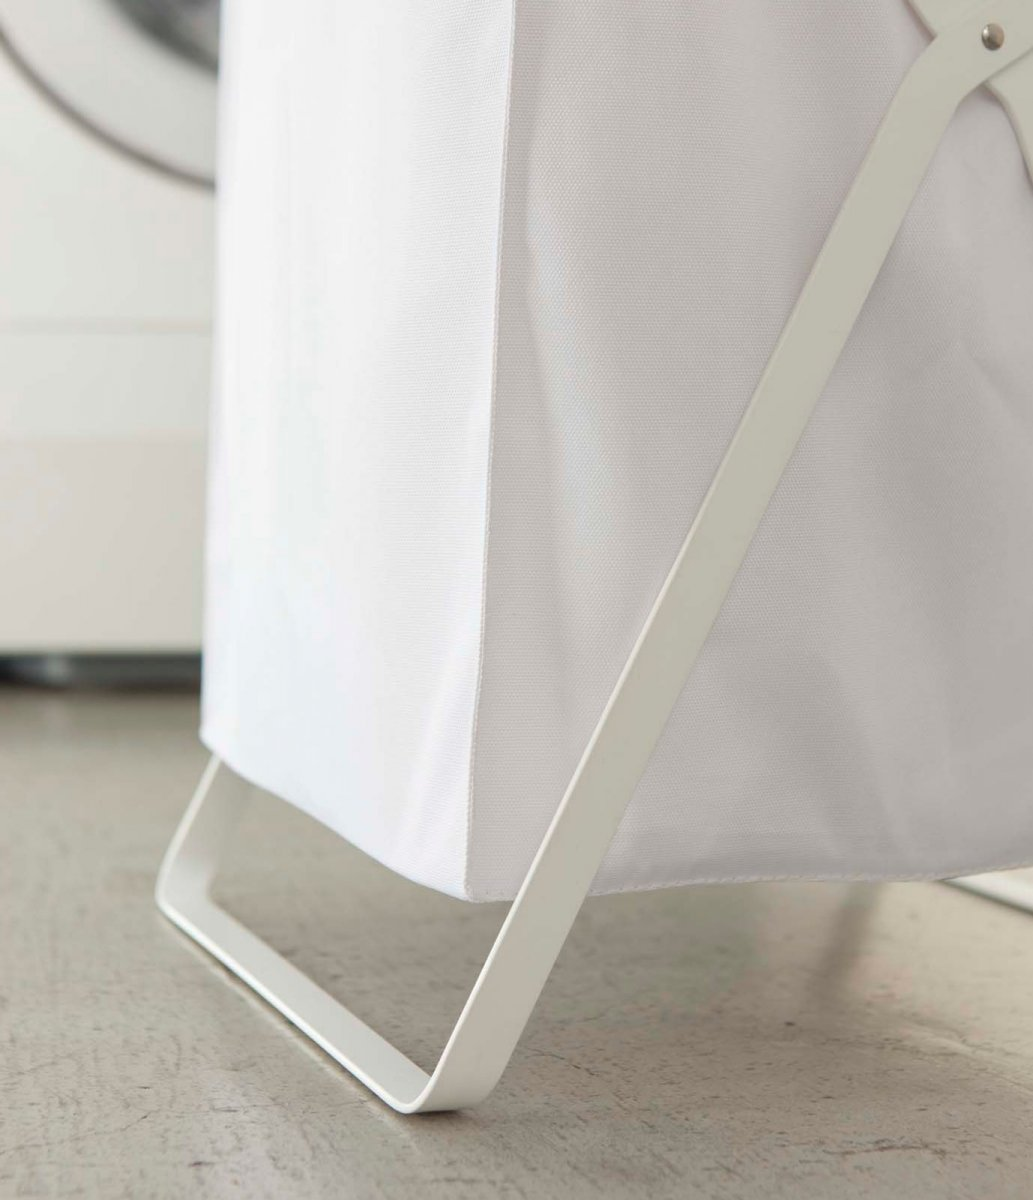 Tower Laundry Basket, white, detail.